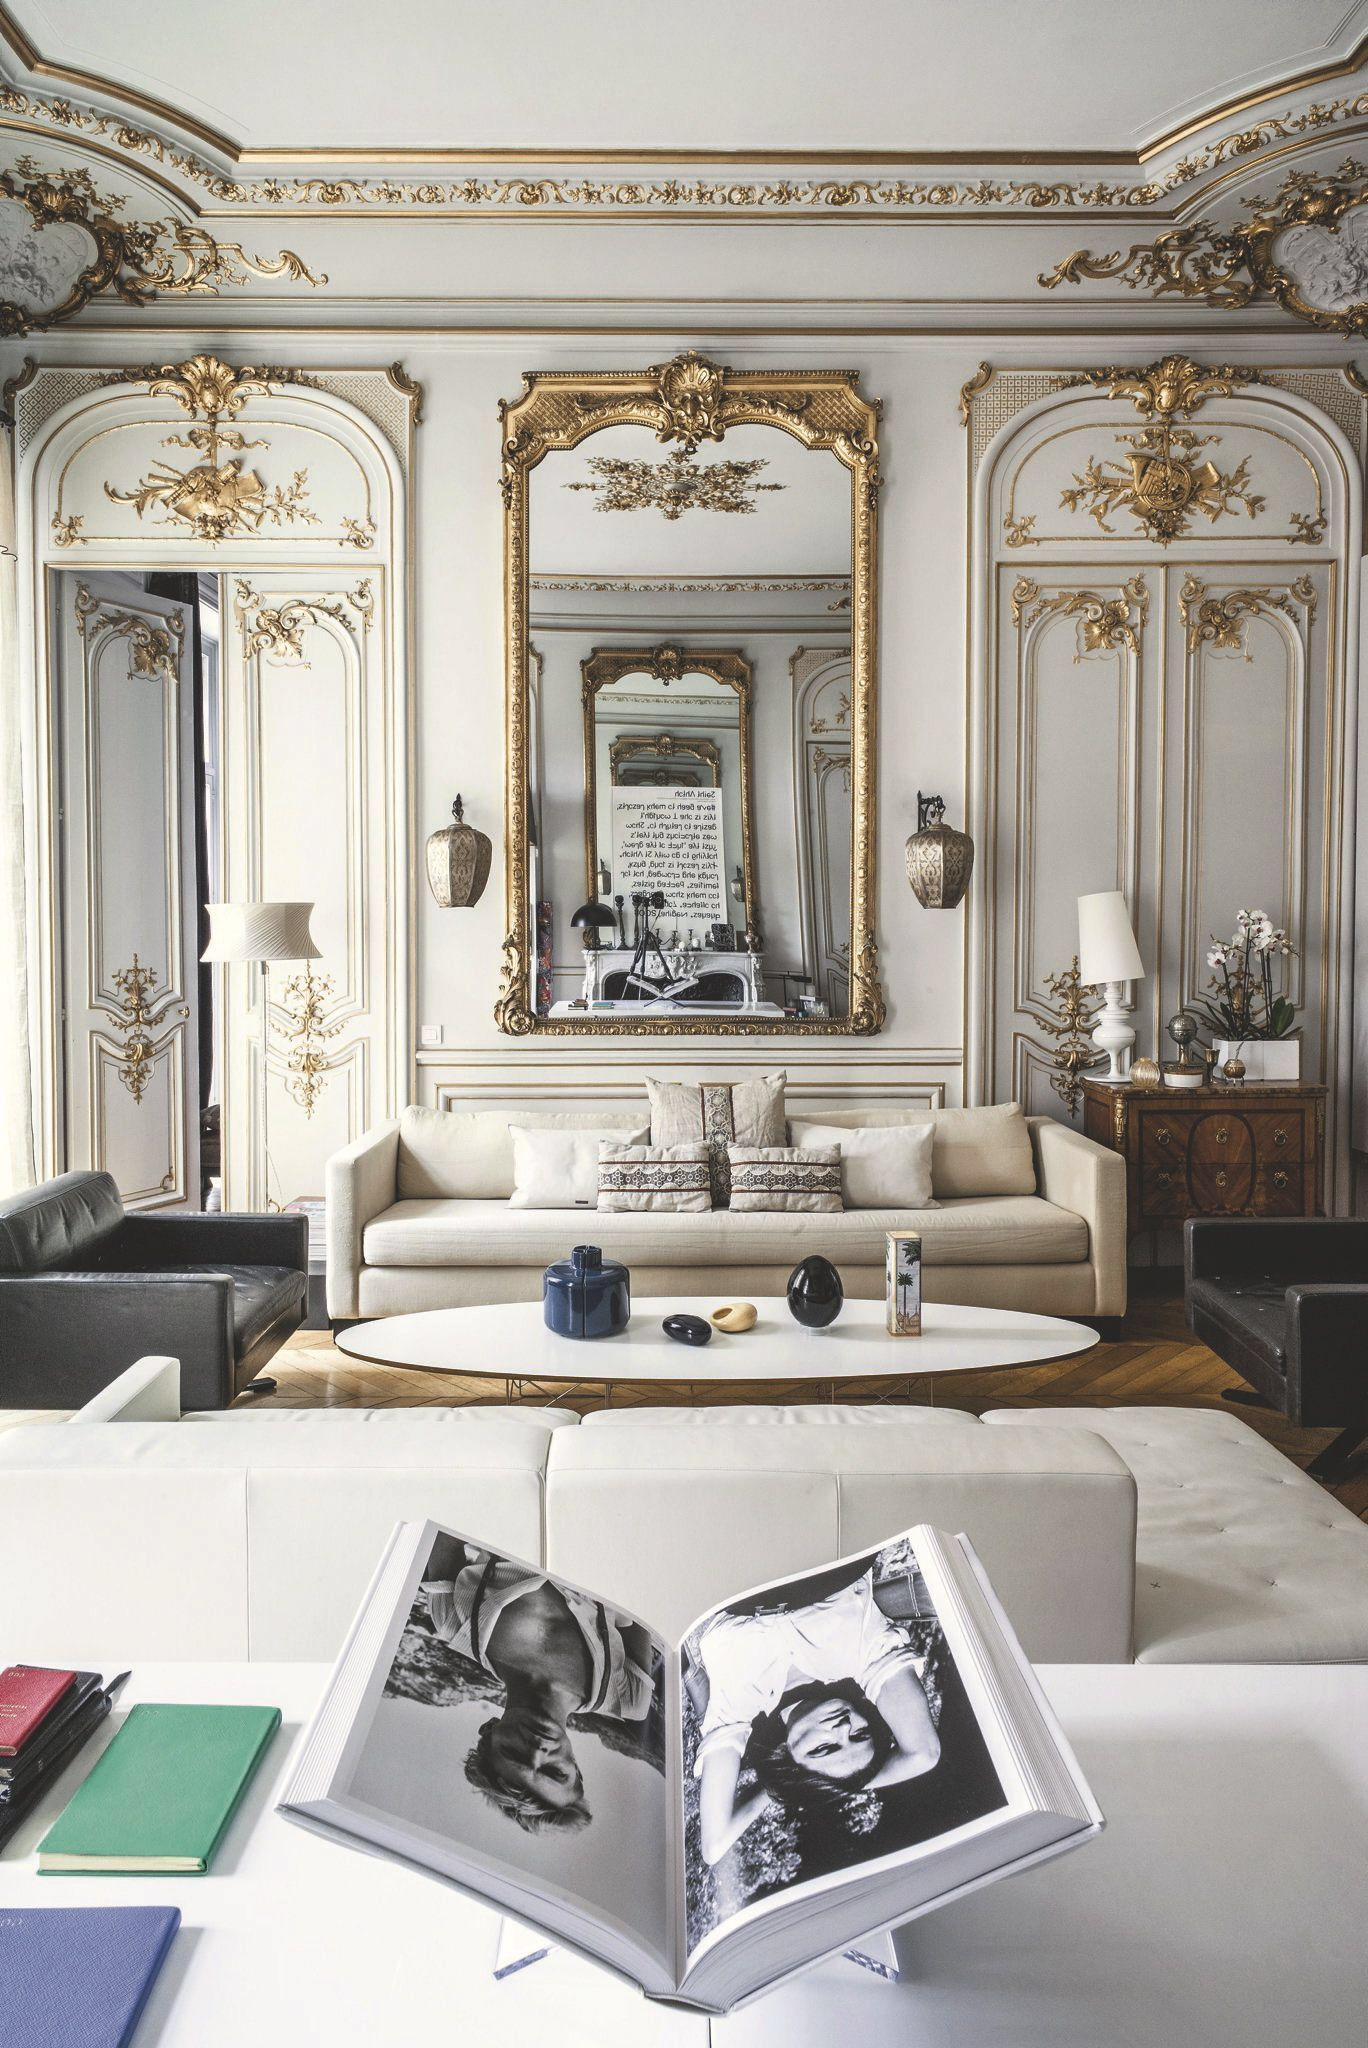 Agencement salon moderne : 10 déco inspirantes | Interiors, Living ...